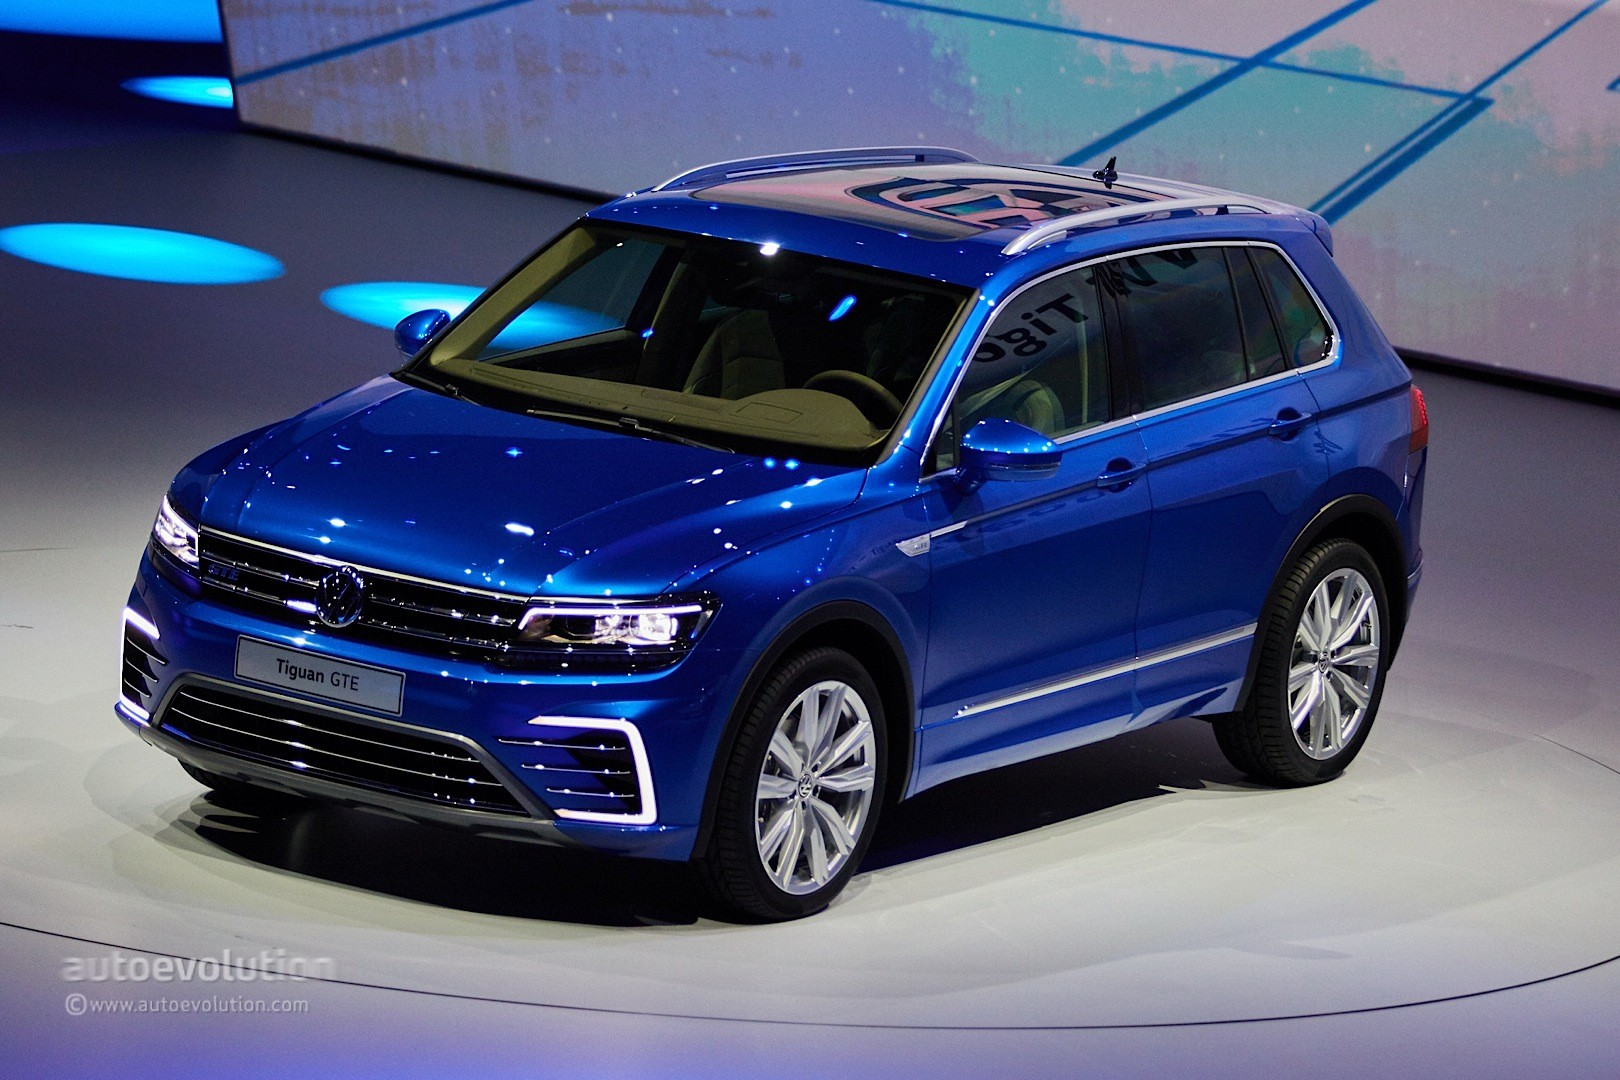 volkswagen tiguan gte concept revealed with 218 ps and 50 km electric range autoevolution. Black Bedroom Furniture Sets. Home Design Ideas